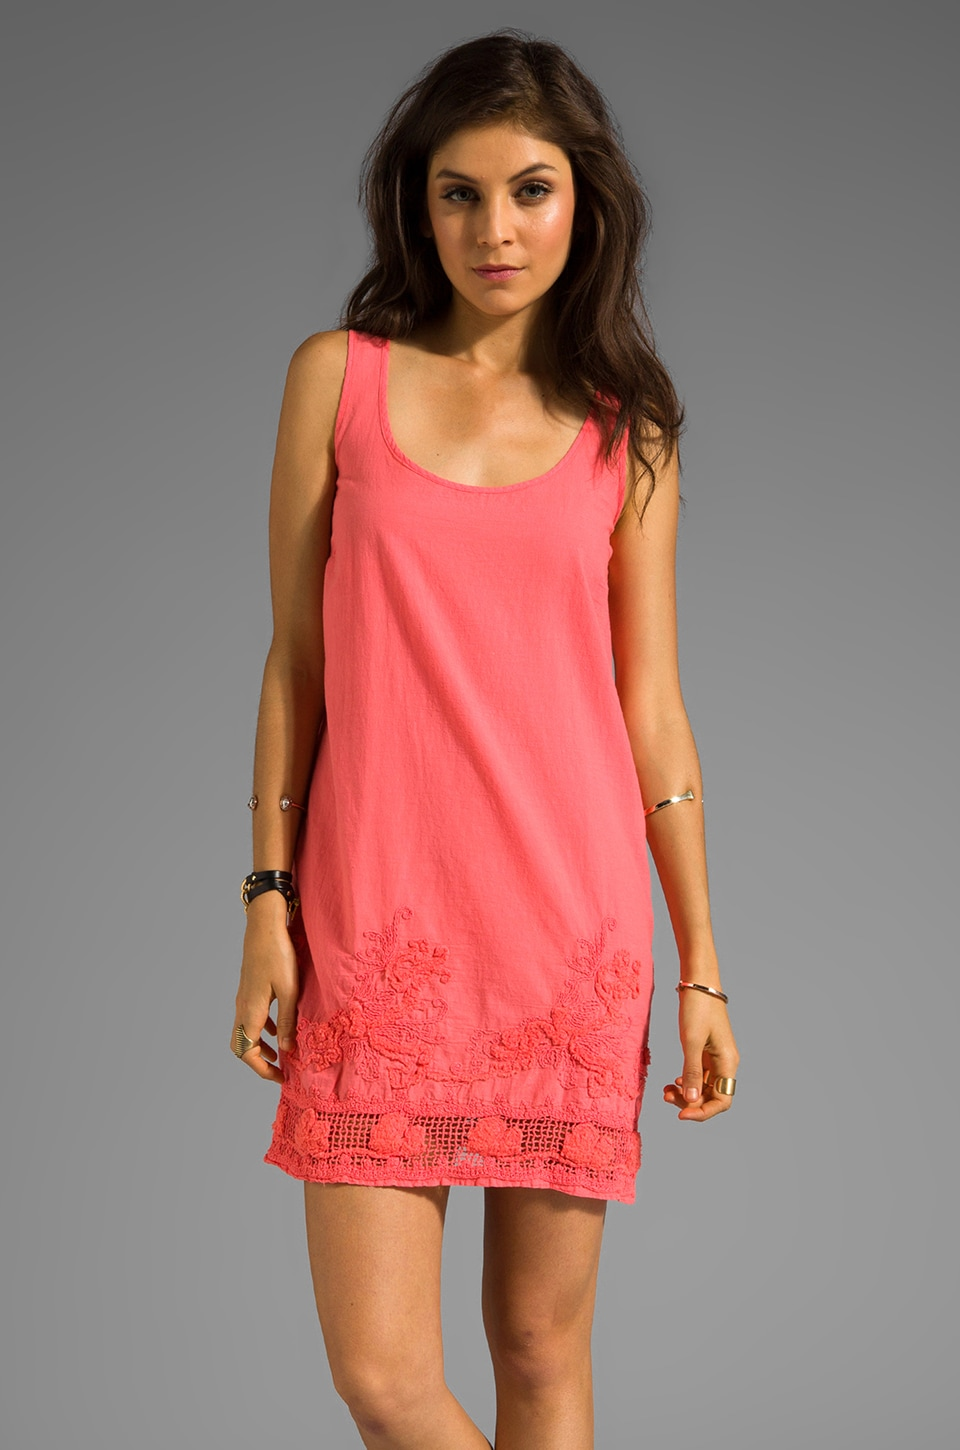 MONROW Woven Embroidered Dress in Coral